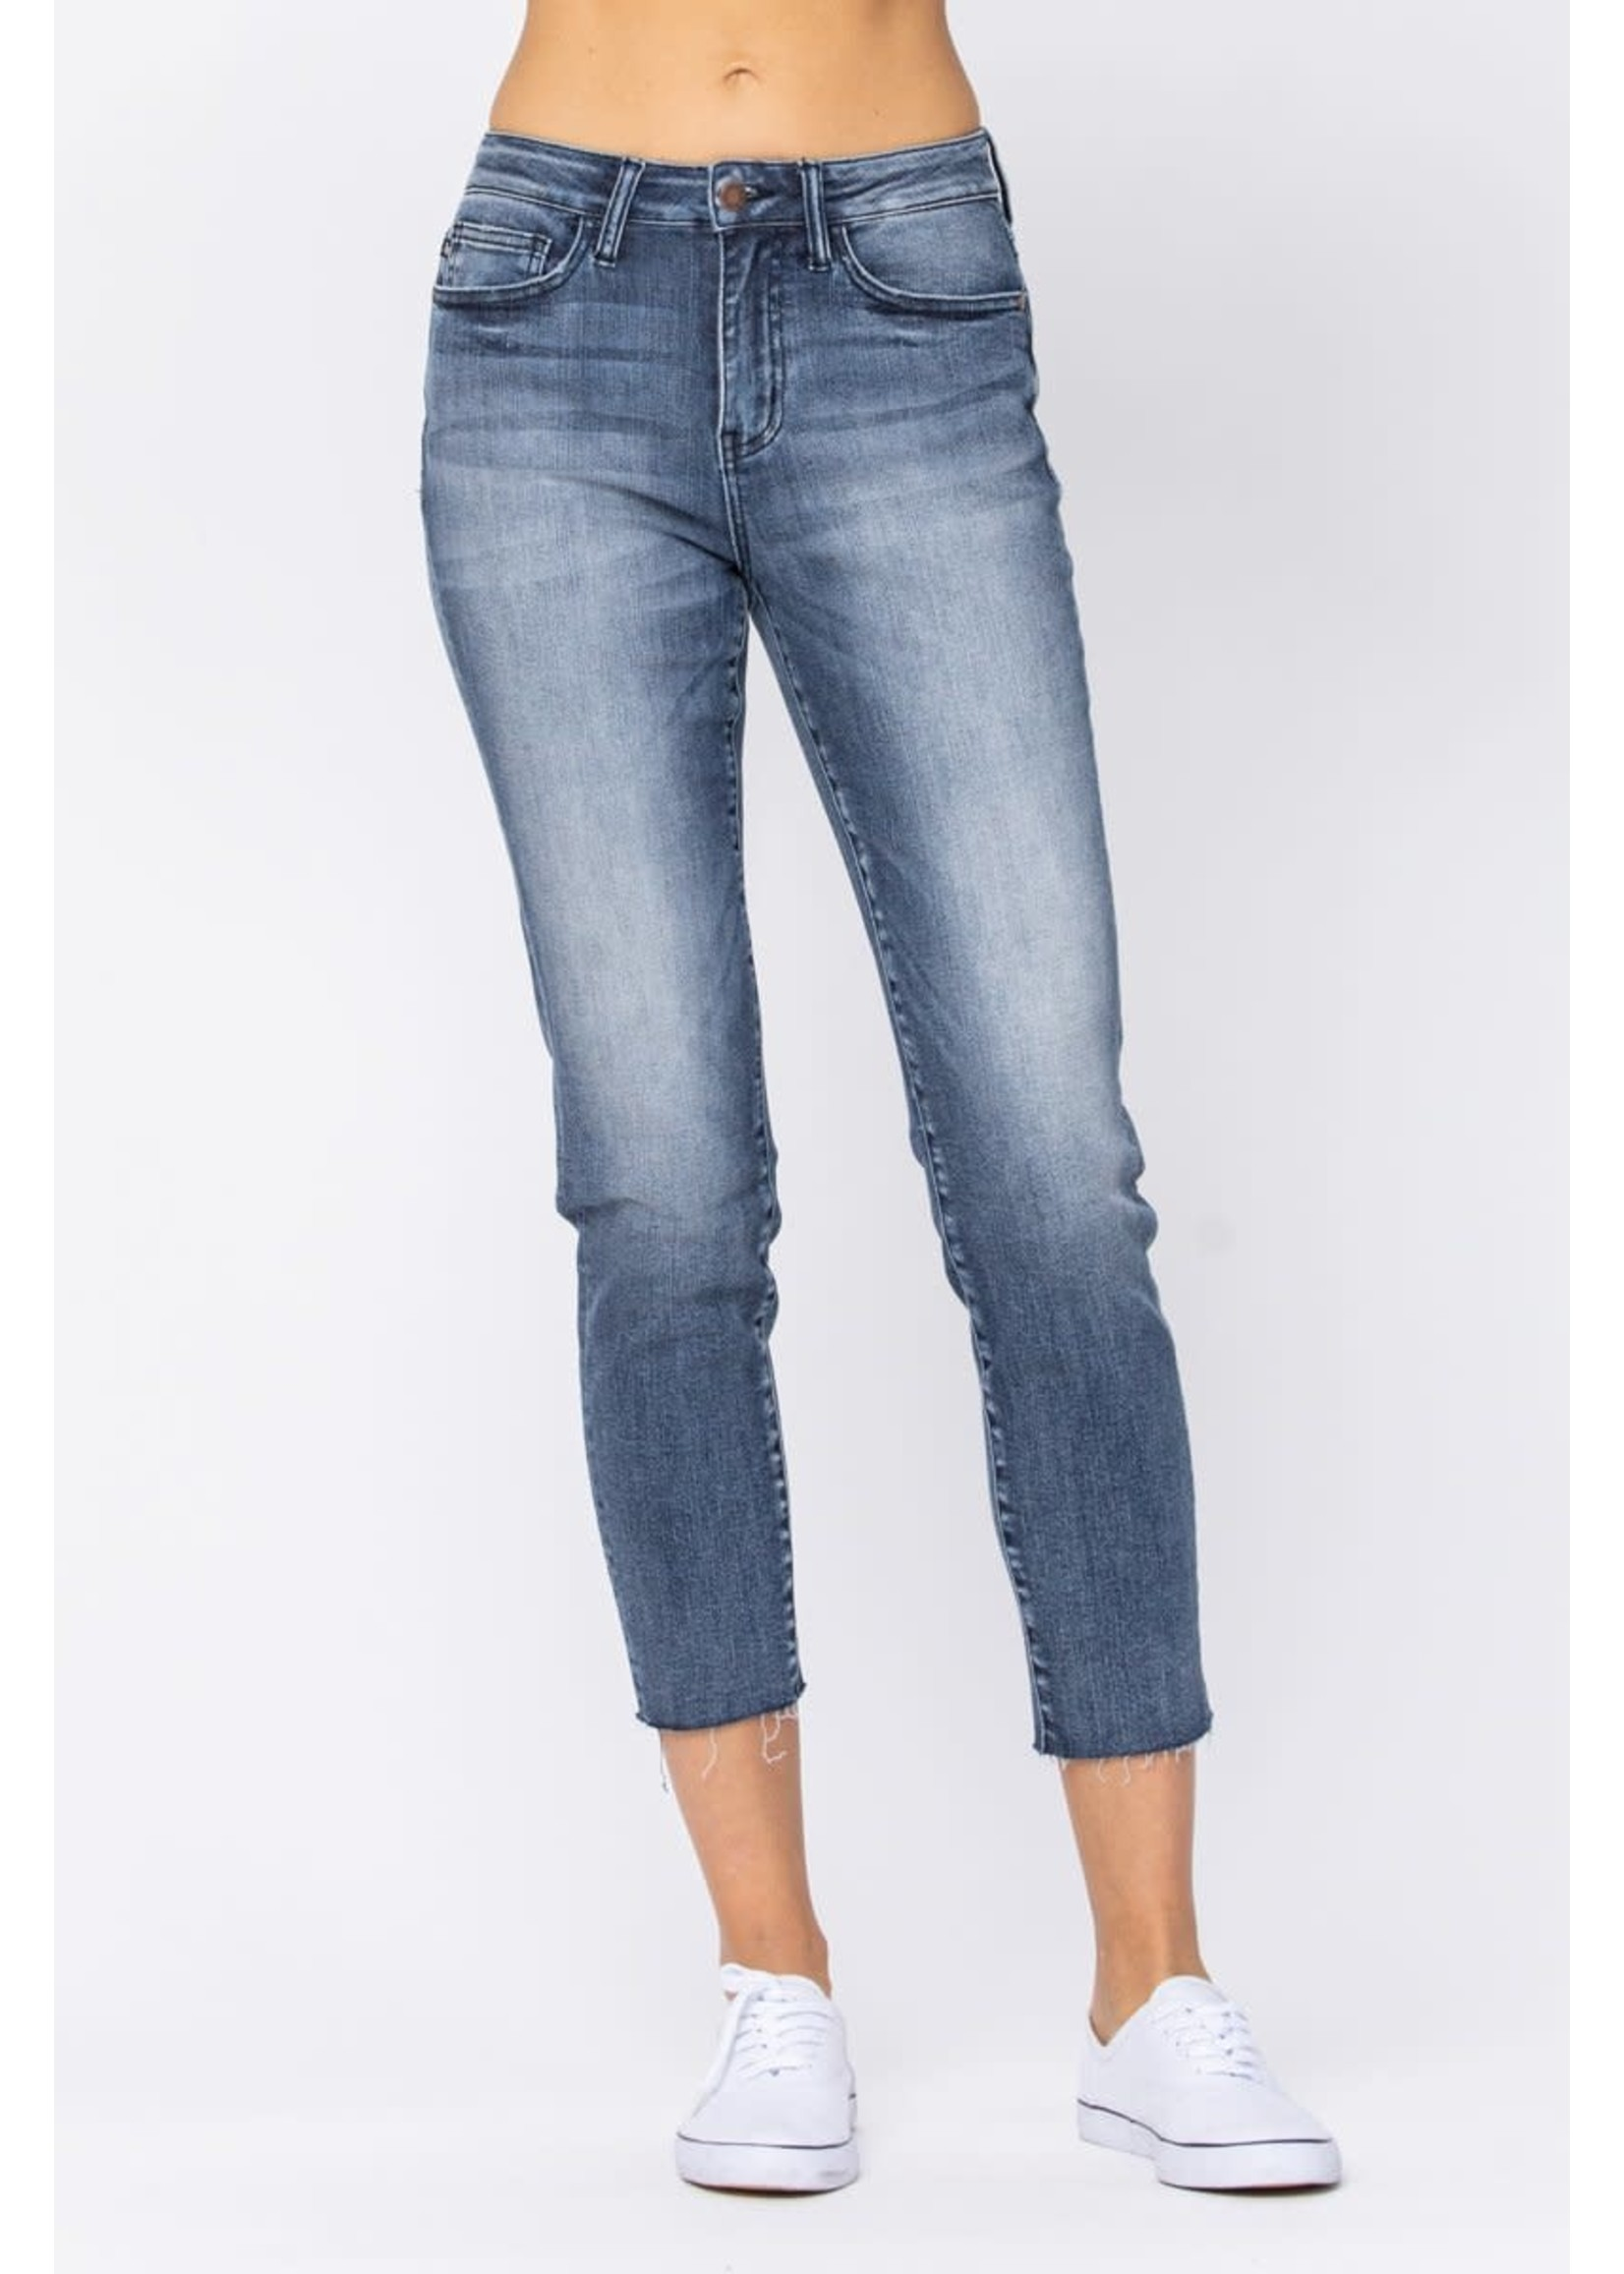 Judy Blue High-Rise Raw Hem Relaxed Fit